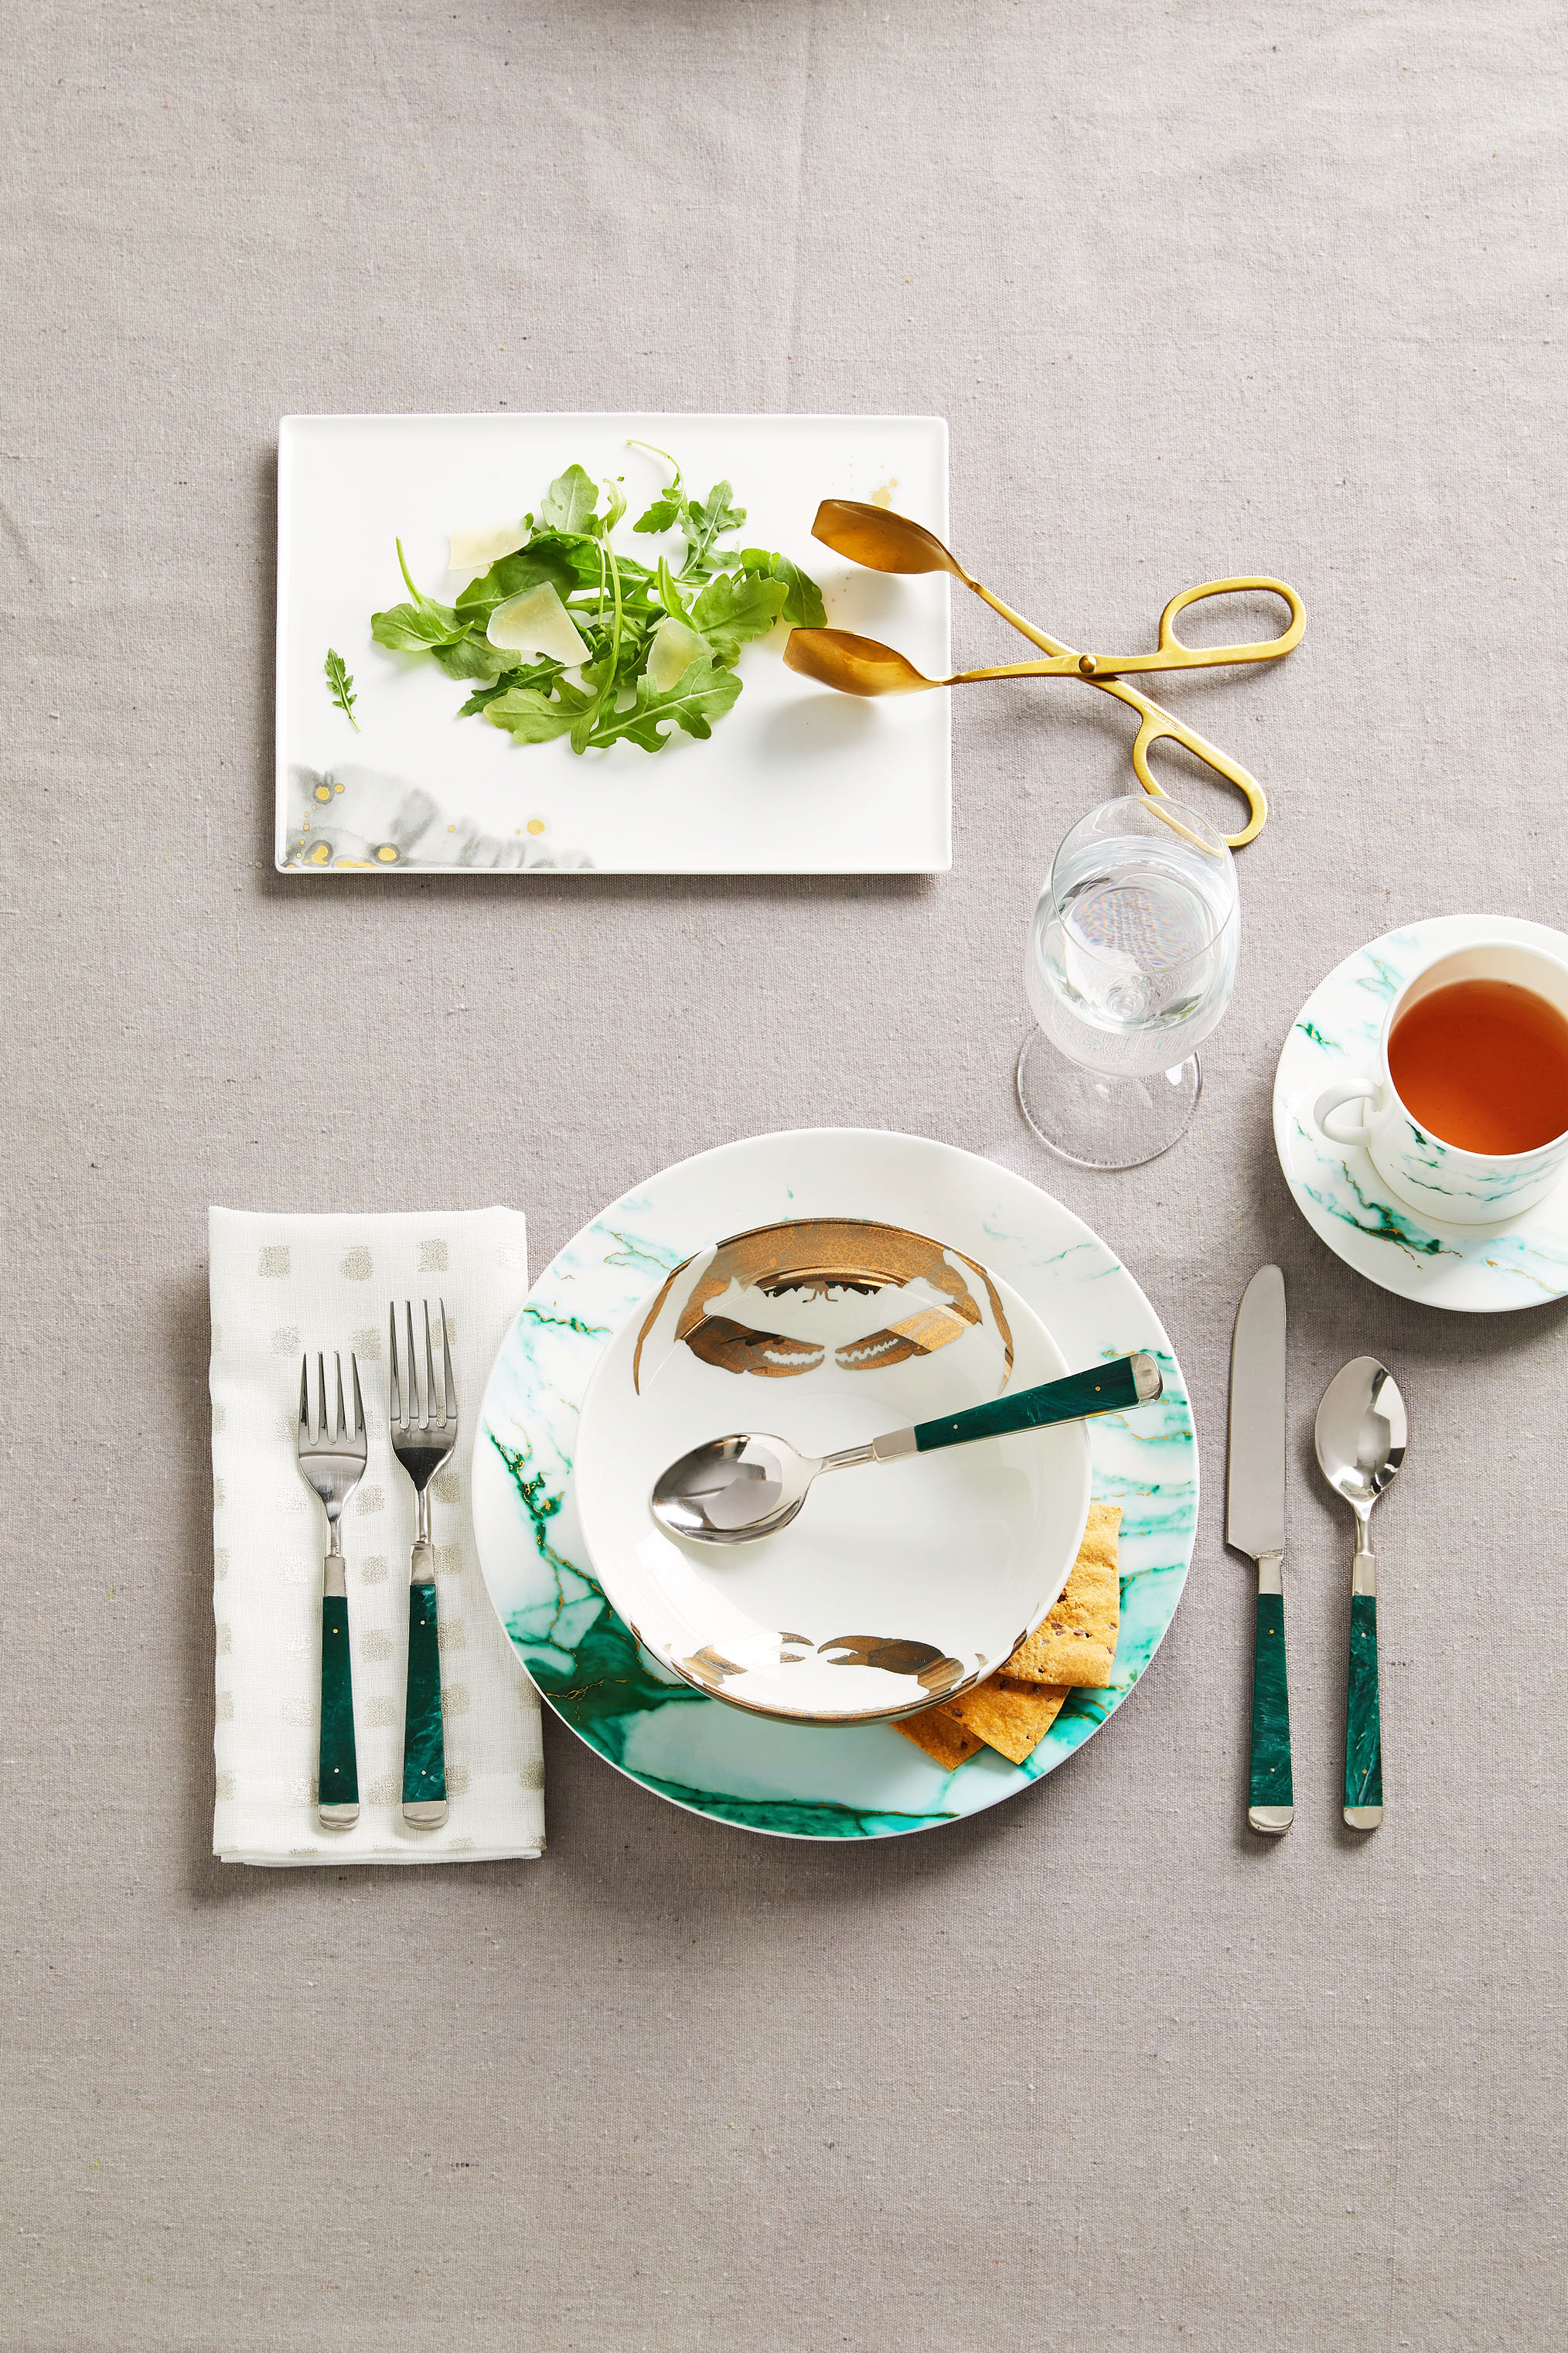 patterned dishes